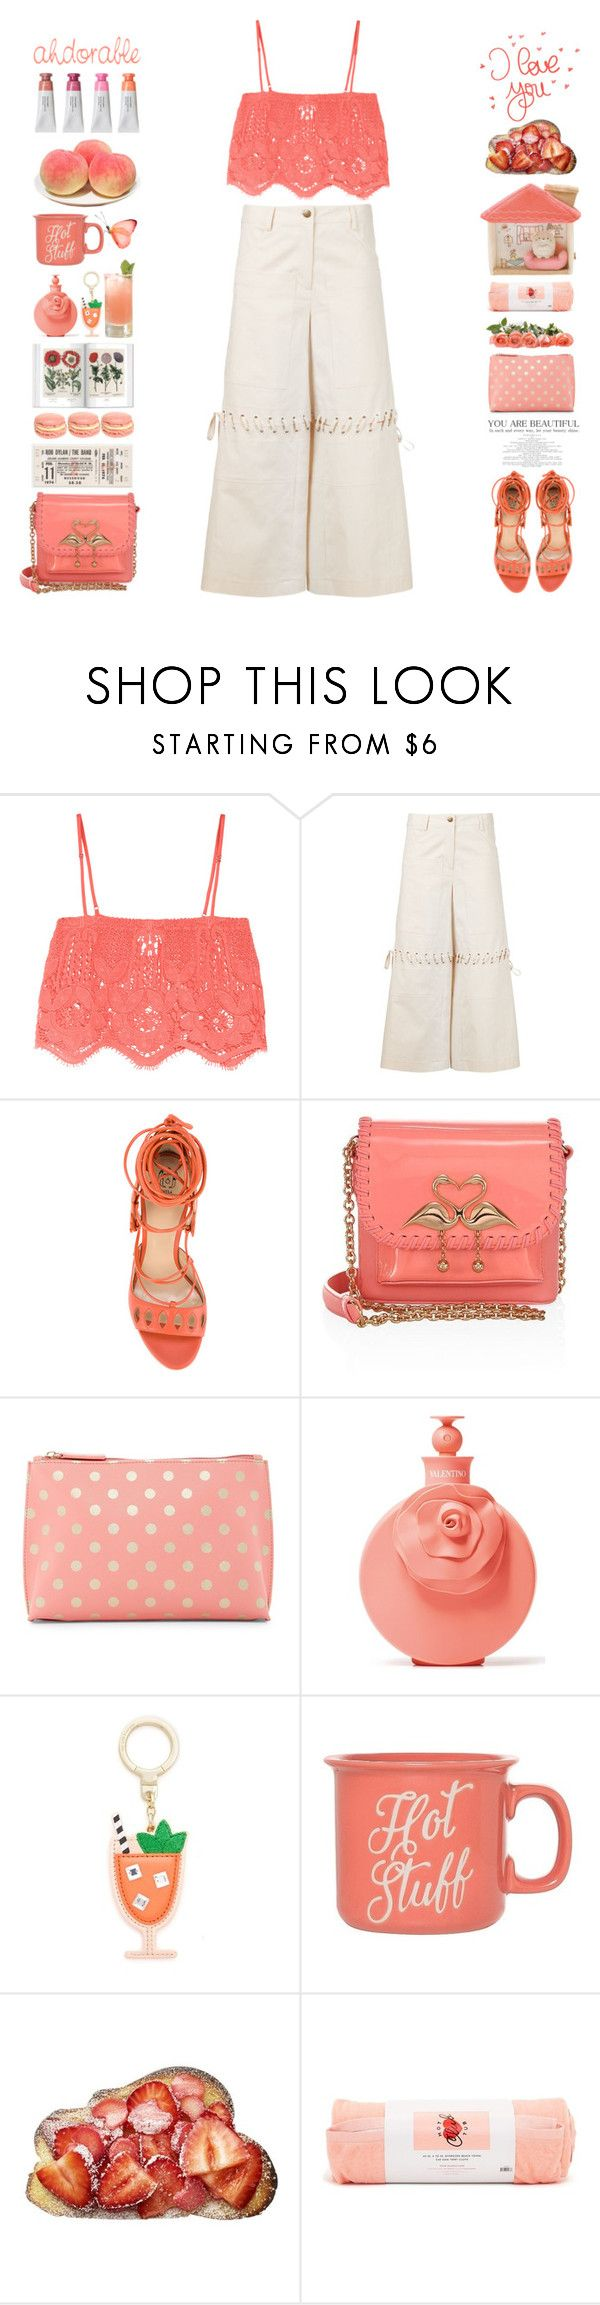 """Ahdorable"" by doga1 ❤ liked on Polyvore featuring Miguelina, Rosie Assoulin, Paula Cademartori, Sophia Webster, Shiraleah, Valentino, Kate Spade, Clay Art and ban.do"